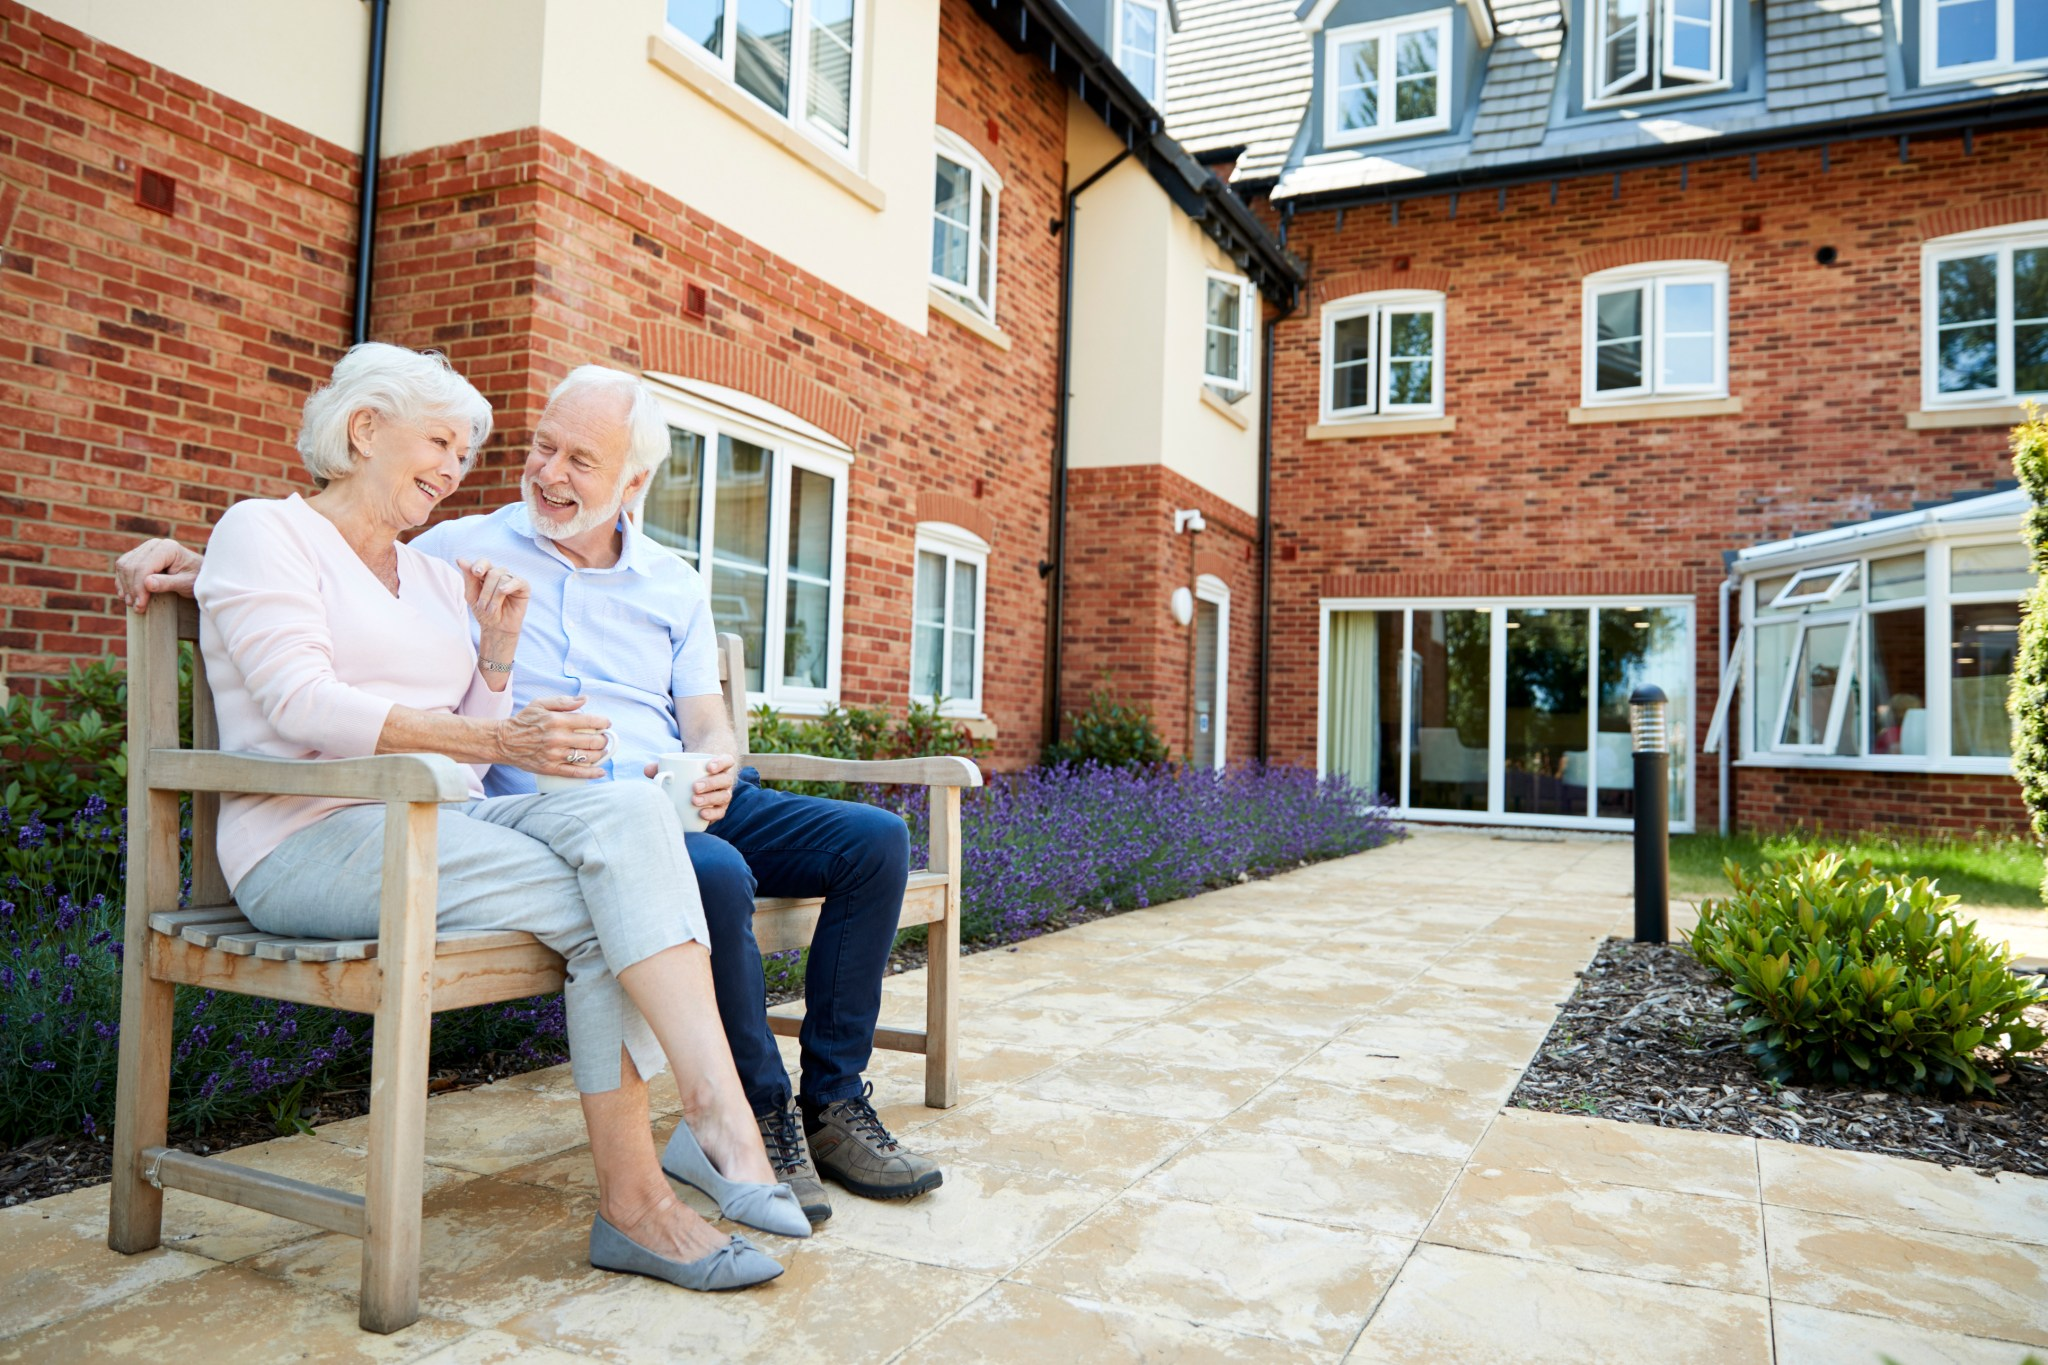 What Are the Types of Senior Housing Options?